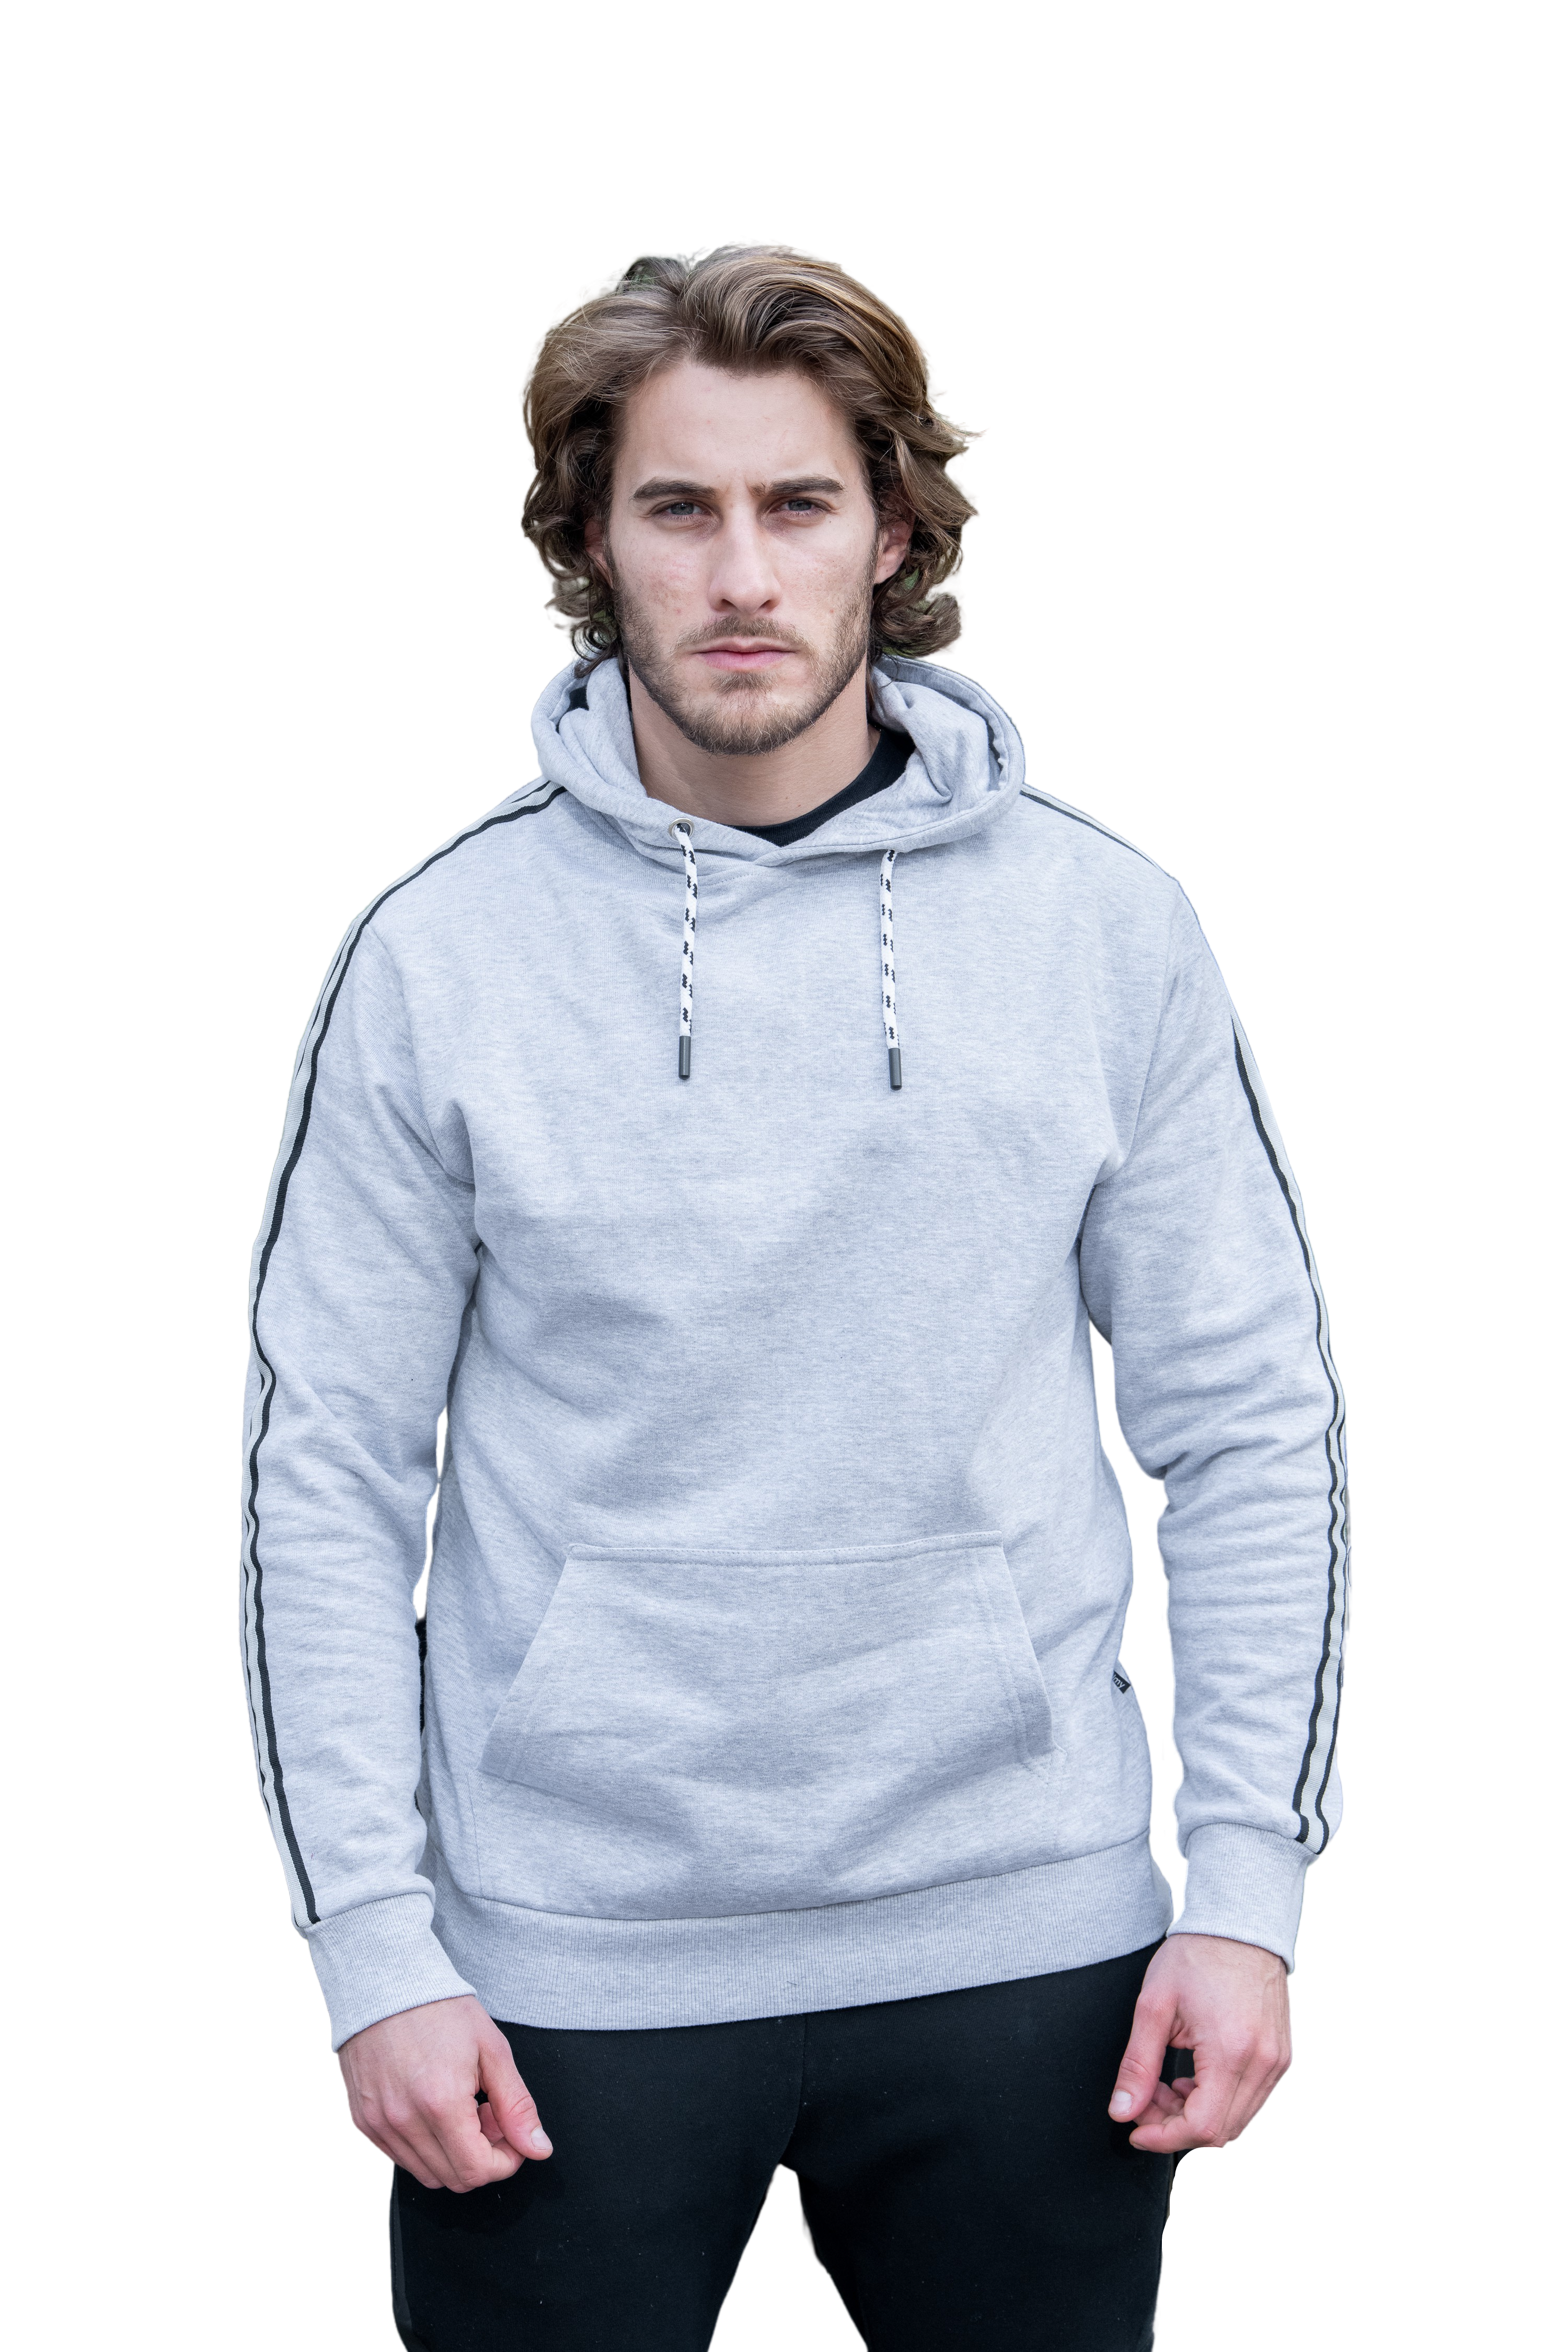 Relaxed fit Signature Grey Hoddie